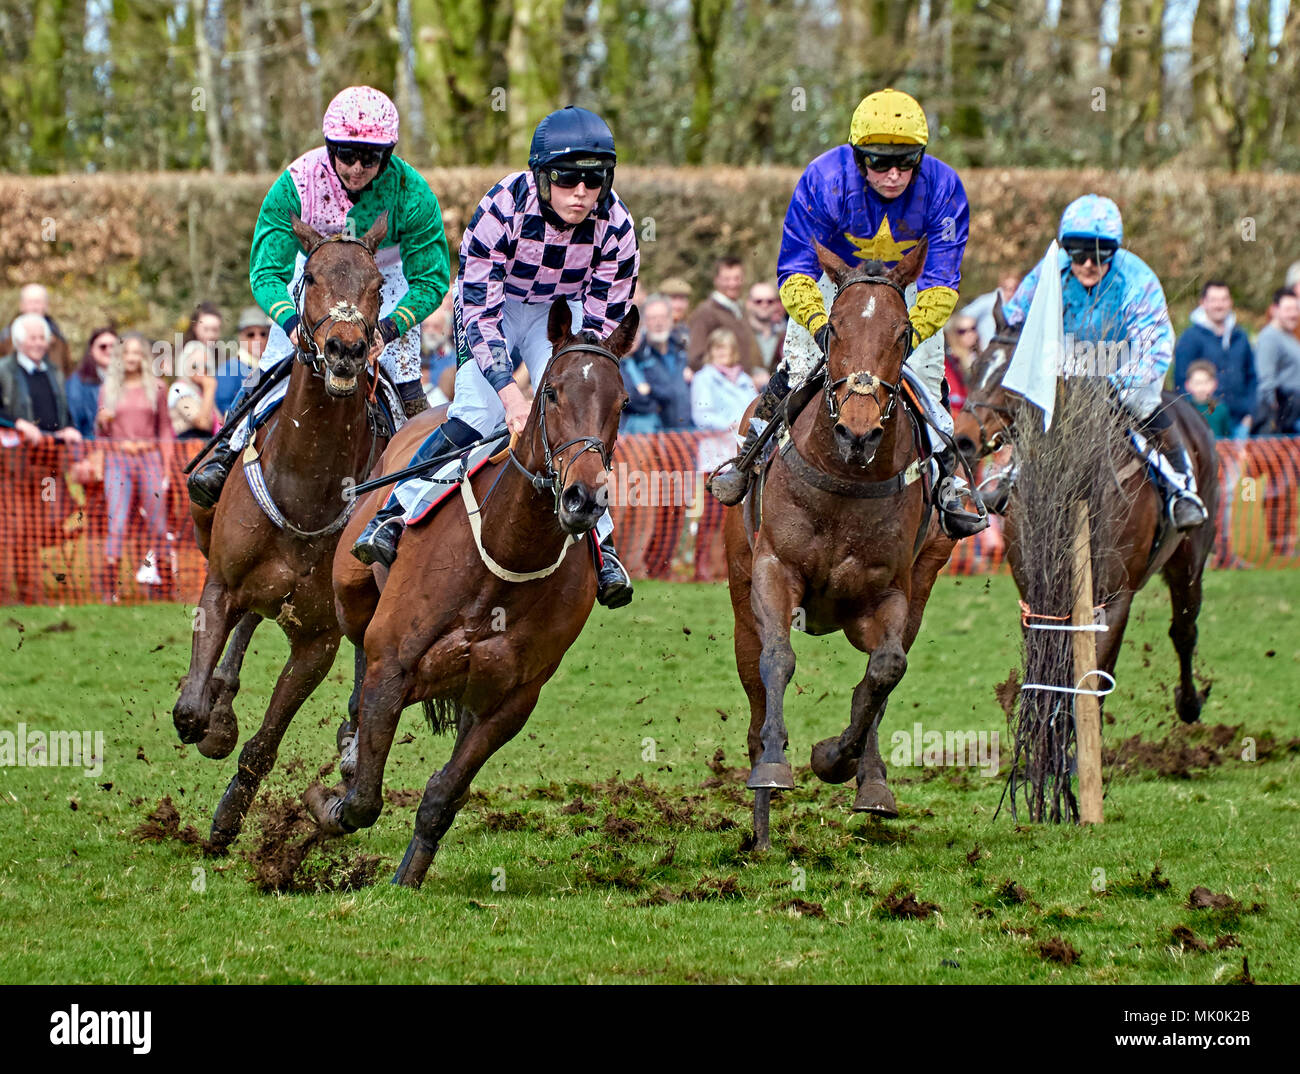 Four amateur jockeys riding bay hunters, galloping over soft ground whilst competing in a point-to-point event Stock Photo